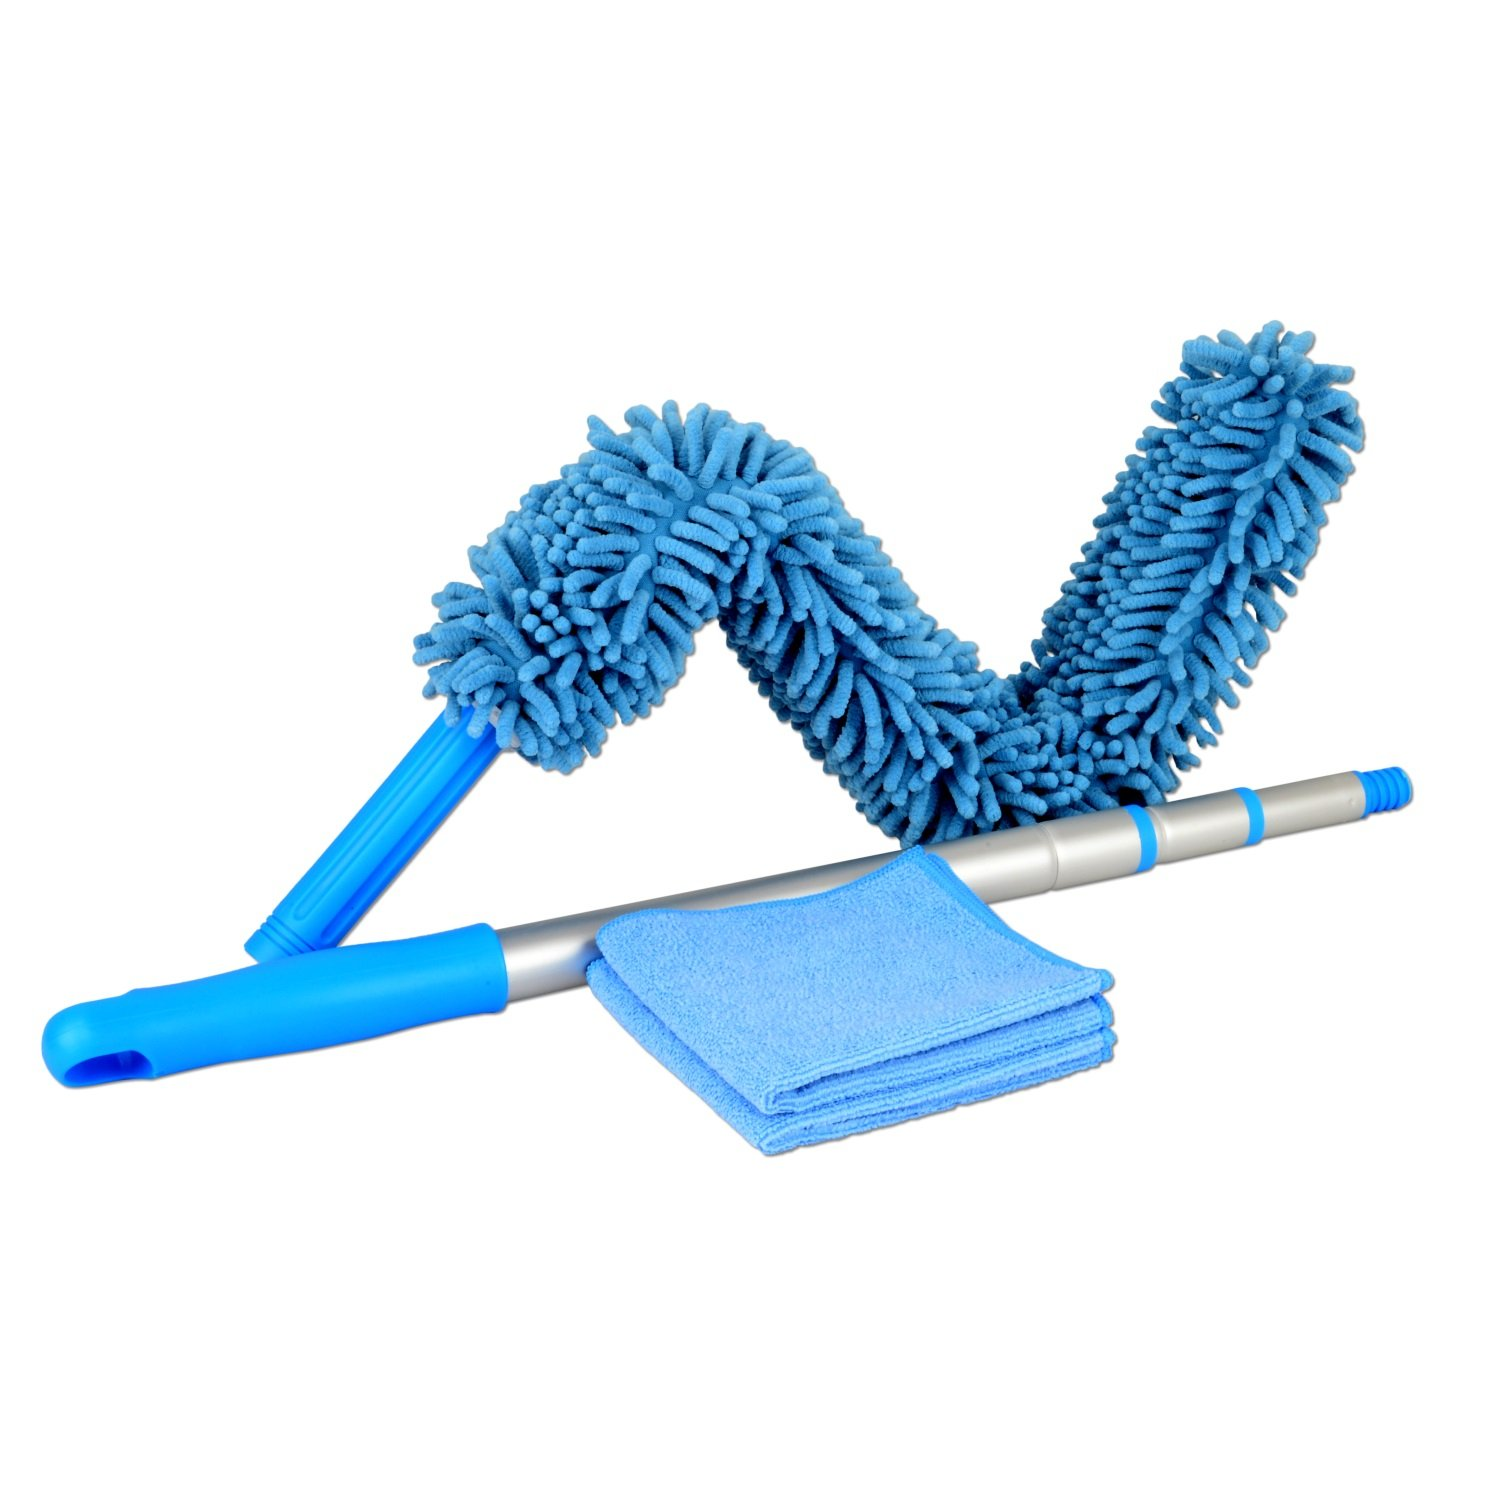 Chenille Microfiber High Duster | Flexible Dusting Wand | Machine Washable by Microfiber Wholesale